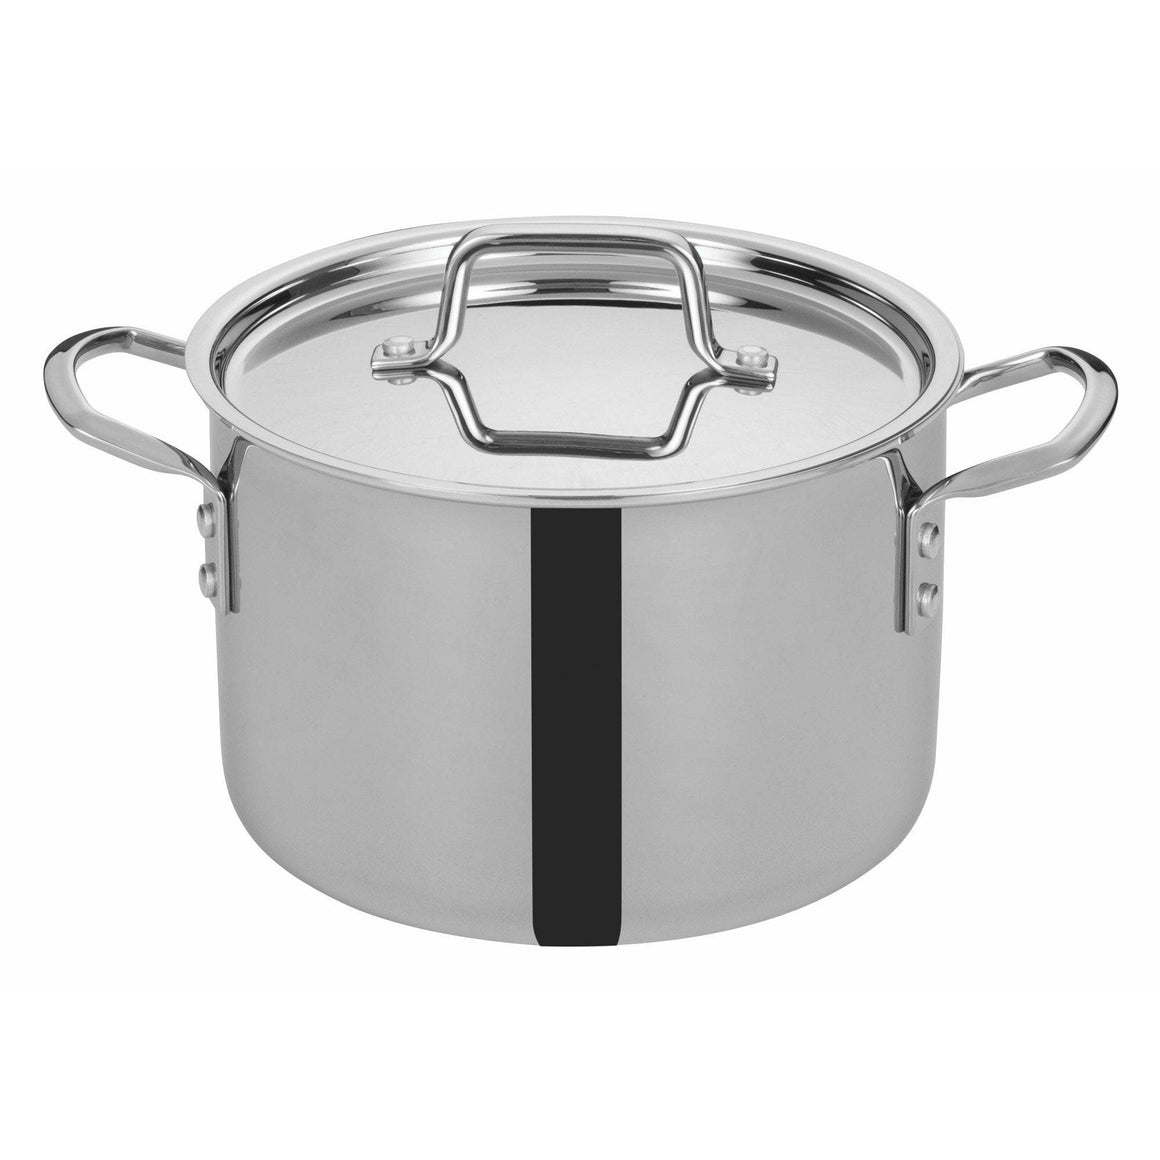 "Winco - TGSP-6 - TRI-GEN™ Tri-Ply Stock Pot w/Cover, 6Qt, 8-1/2""Dia - Cookware"